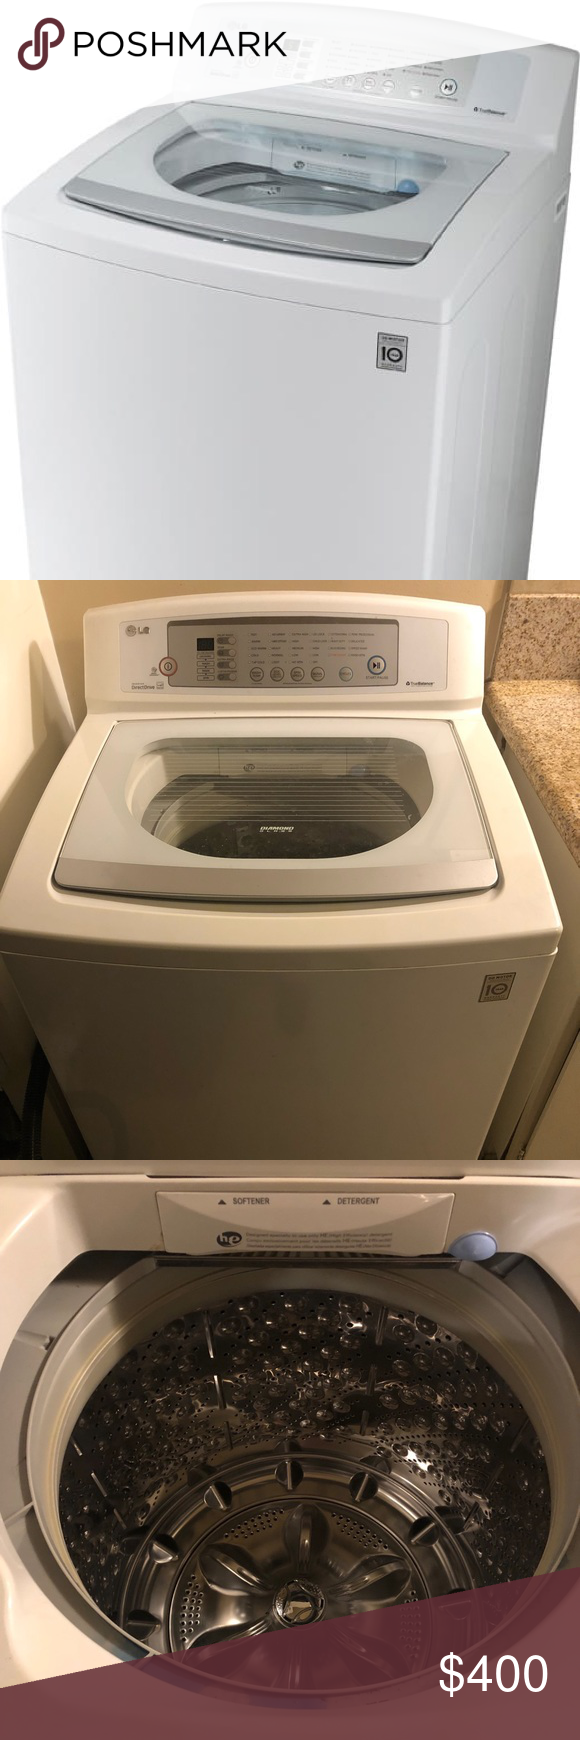 LG High Efficiency Top-Loading Washer LG - 3.7 Cu. Ft. 8 ...